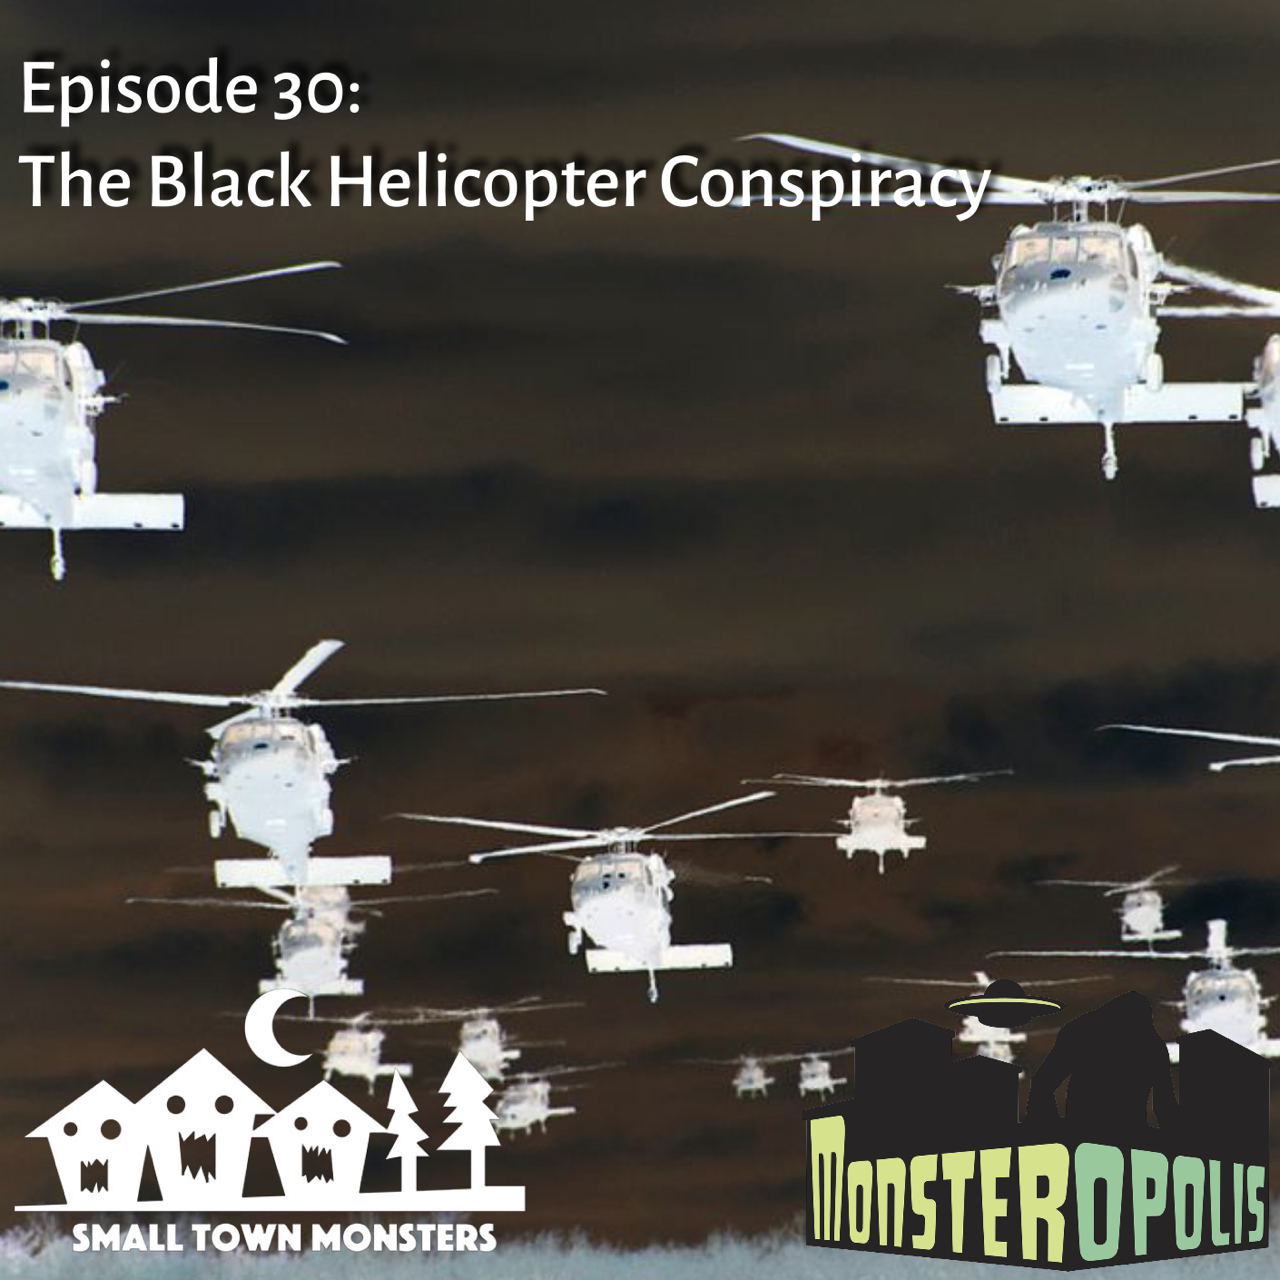 Episode 30: The Black Helicopter Conspiracy